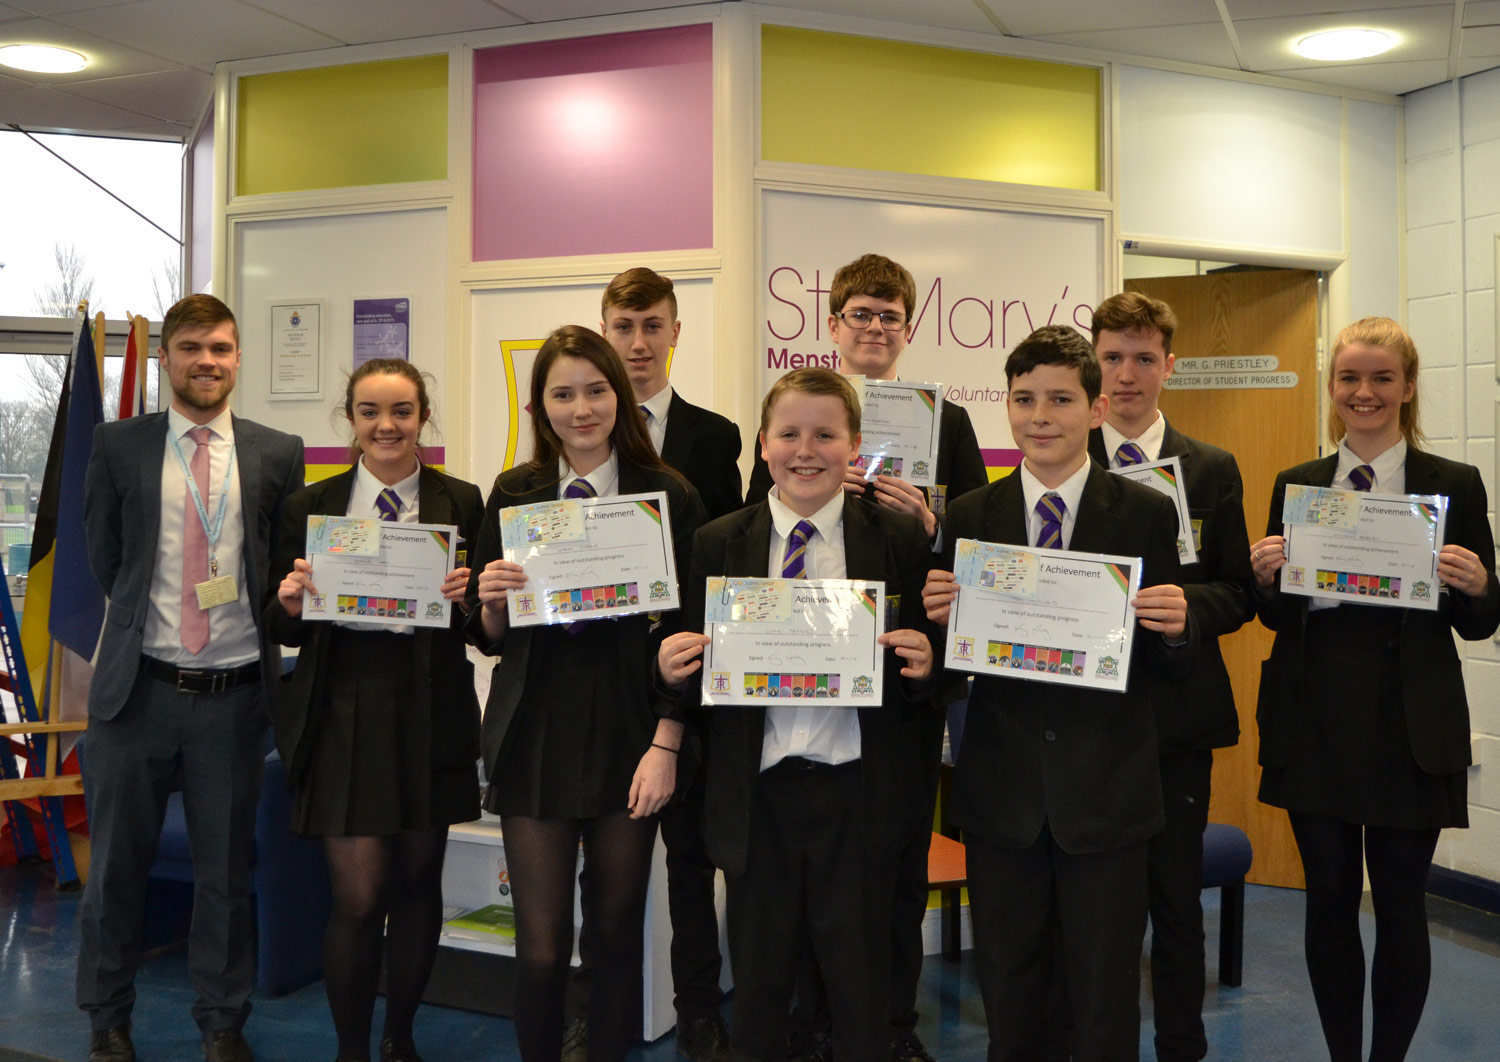 Photo: Commemorative photo of our Award winners with Mr Wilkes